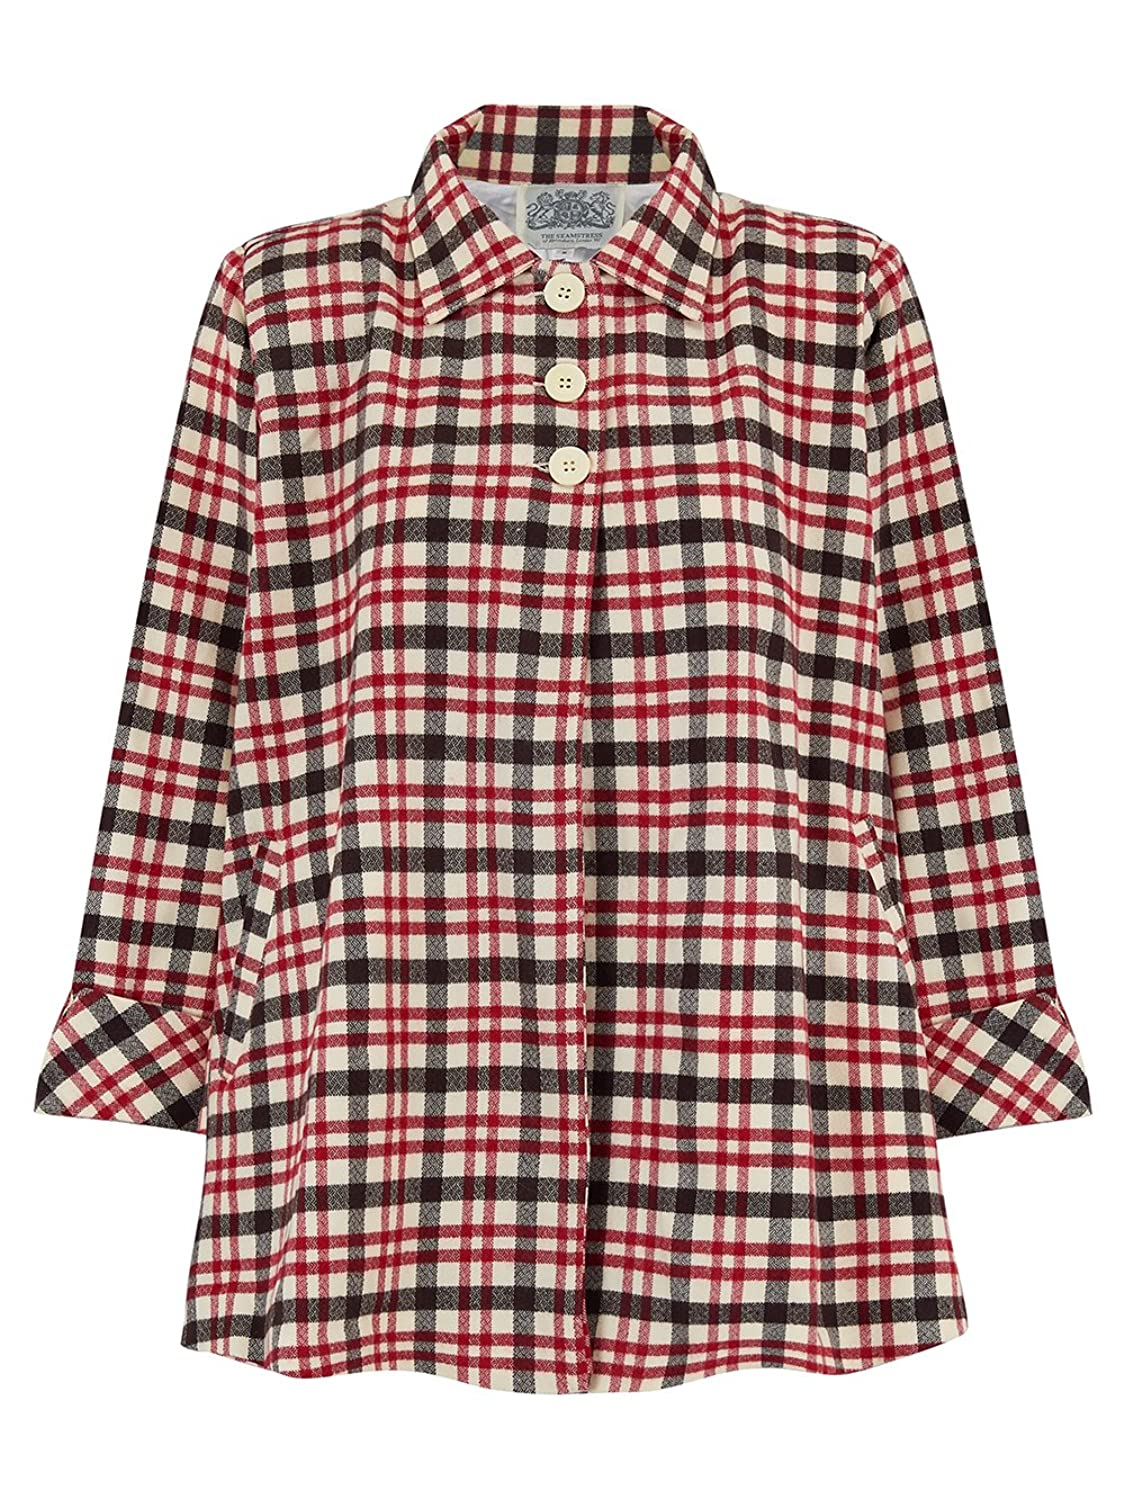 Vintage Coats & Jackets | Retro Coats and Jackets 1940s Inspired Vintage Swing Jacket in Red/White Check by The Seamstress of Bloomsbury £125.00 AT vintagedancer.com